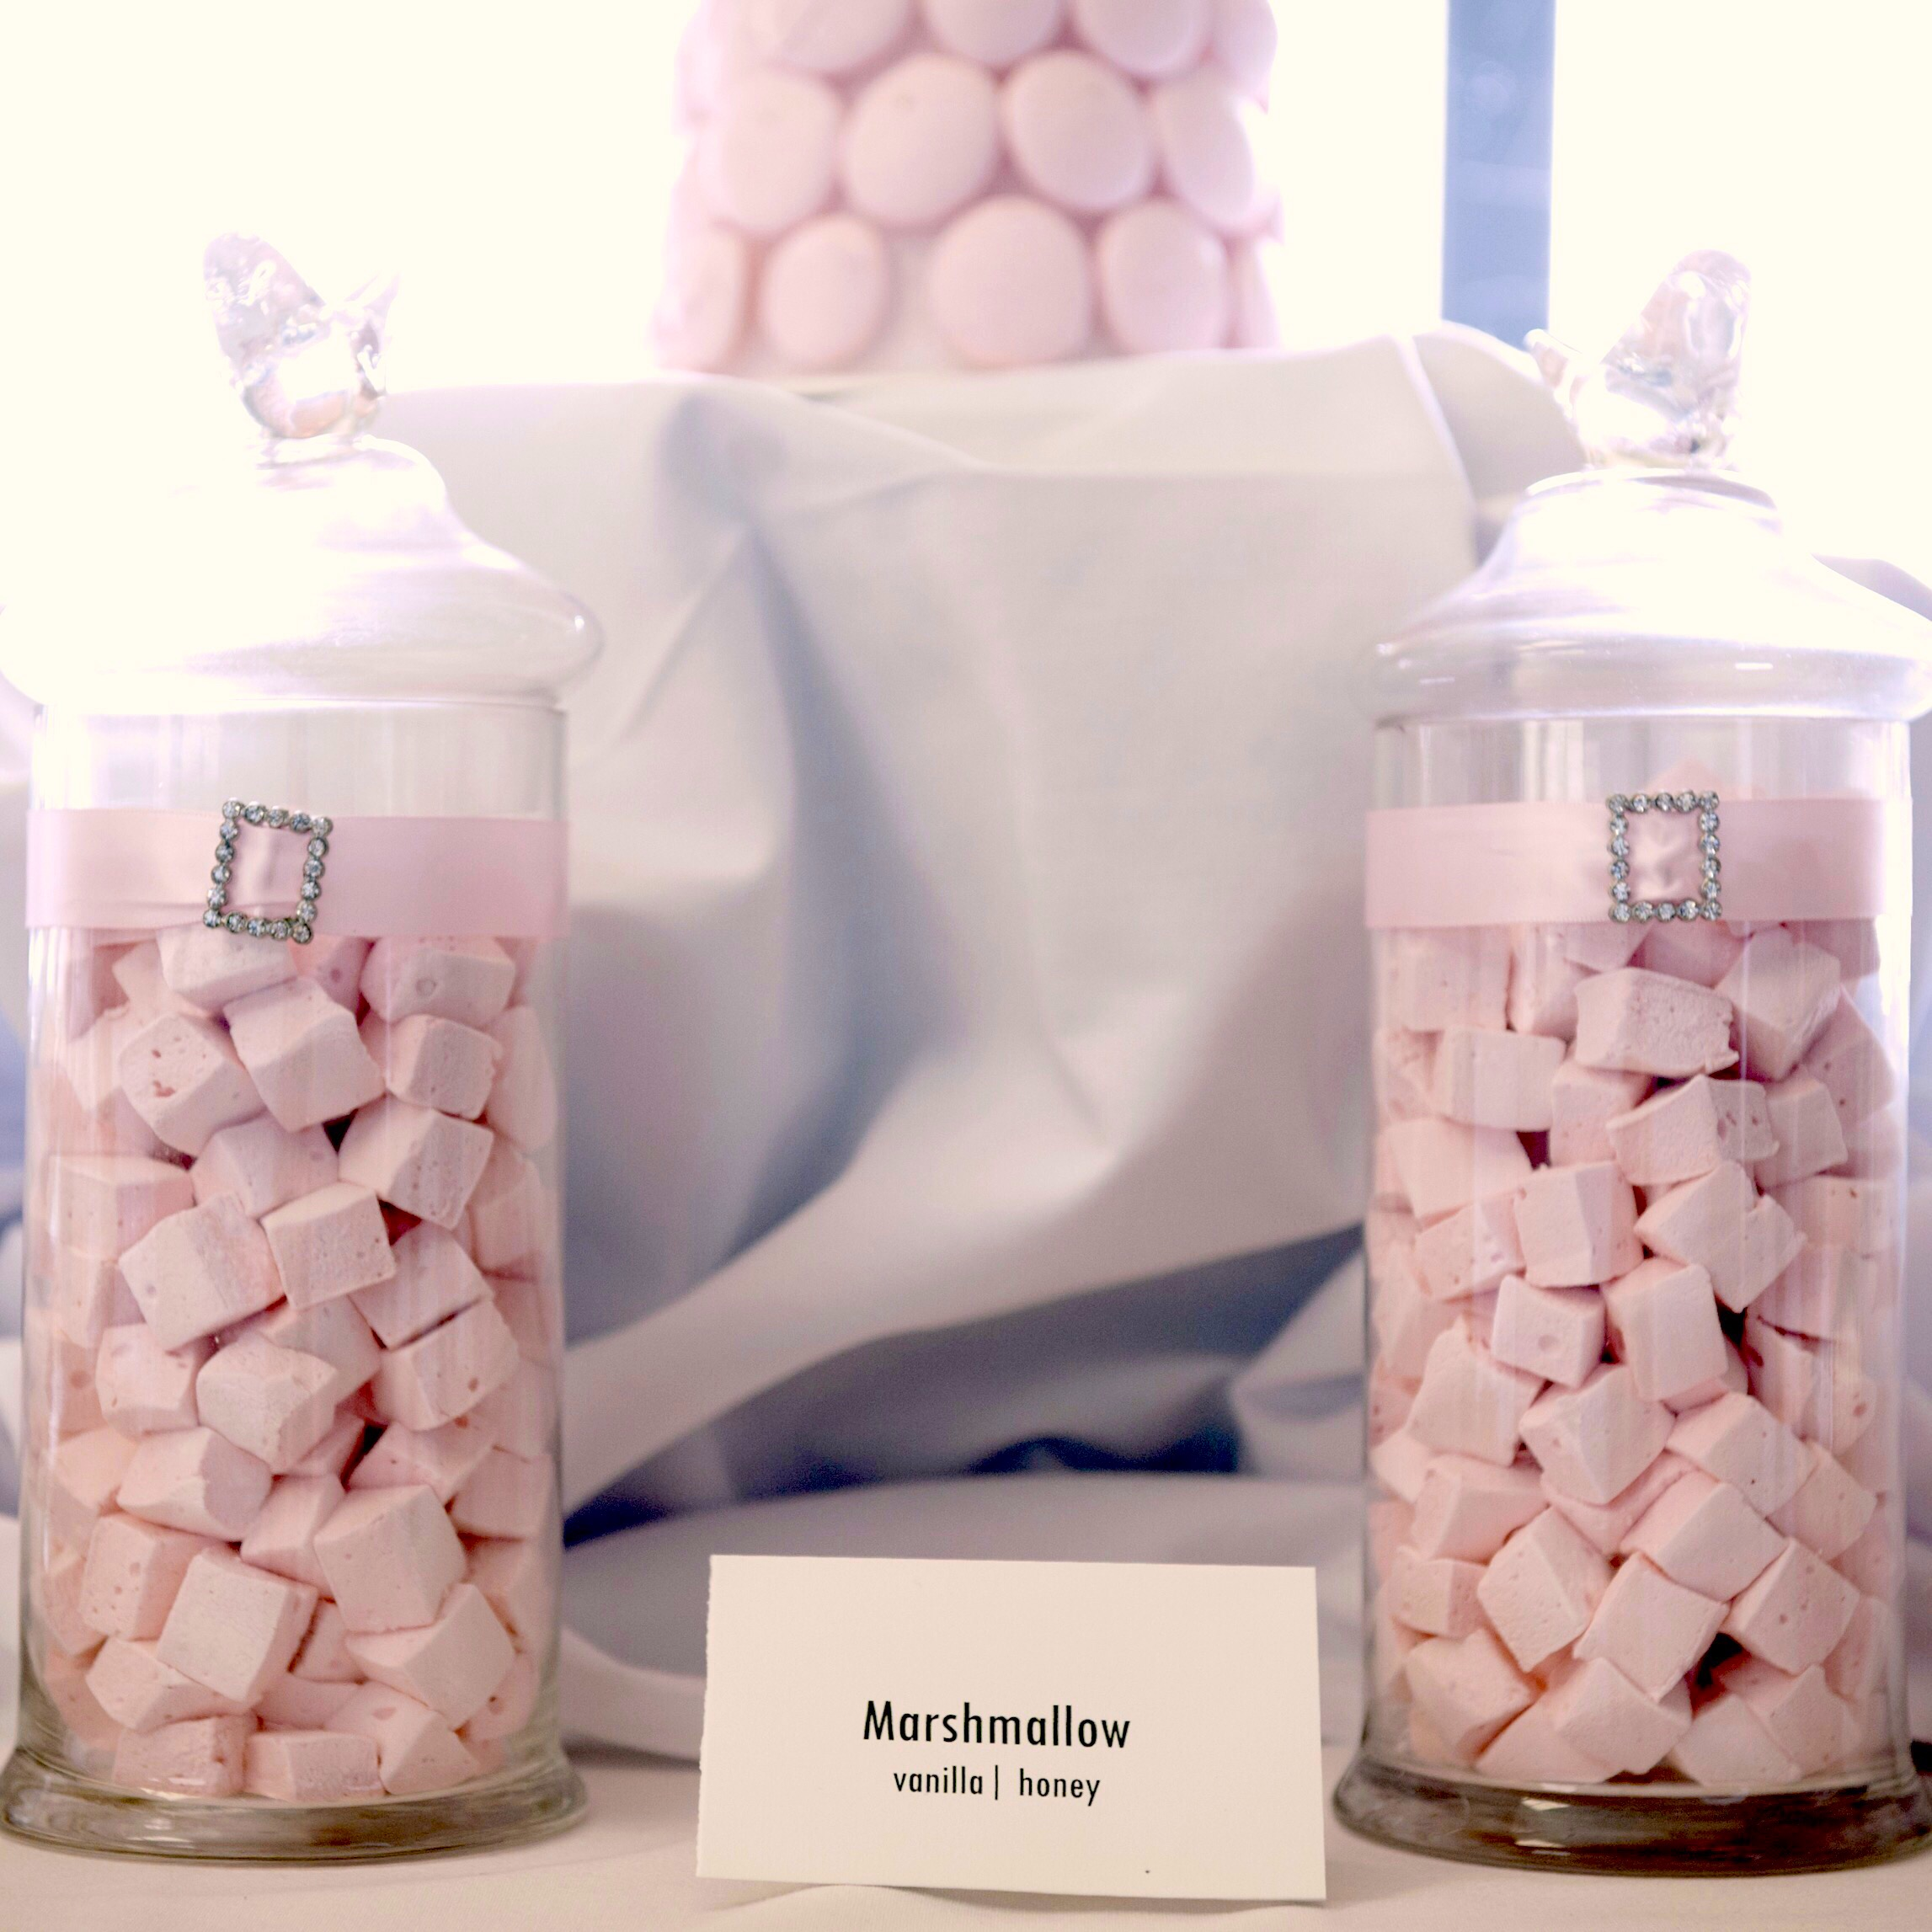 Marshmallow sweet table for wedding cake made by Gusta Cooking Studio